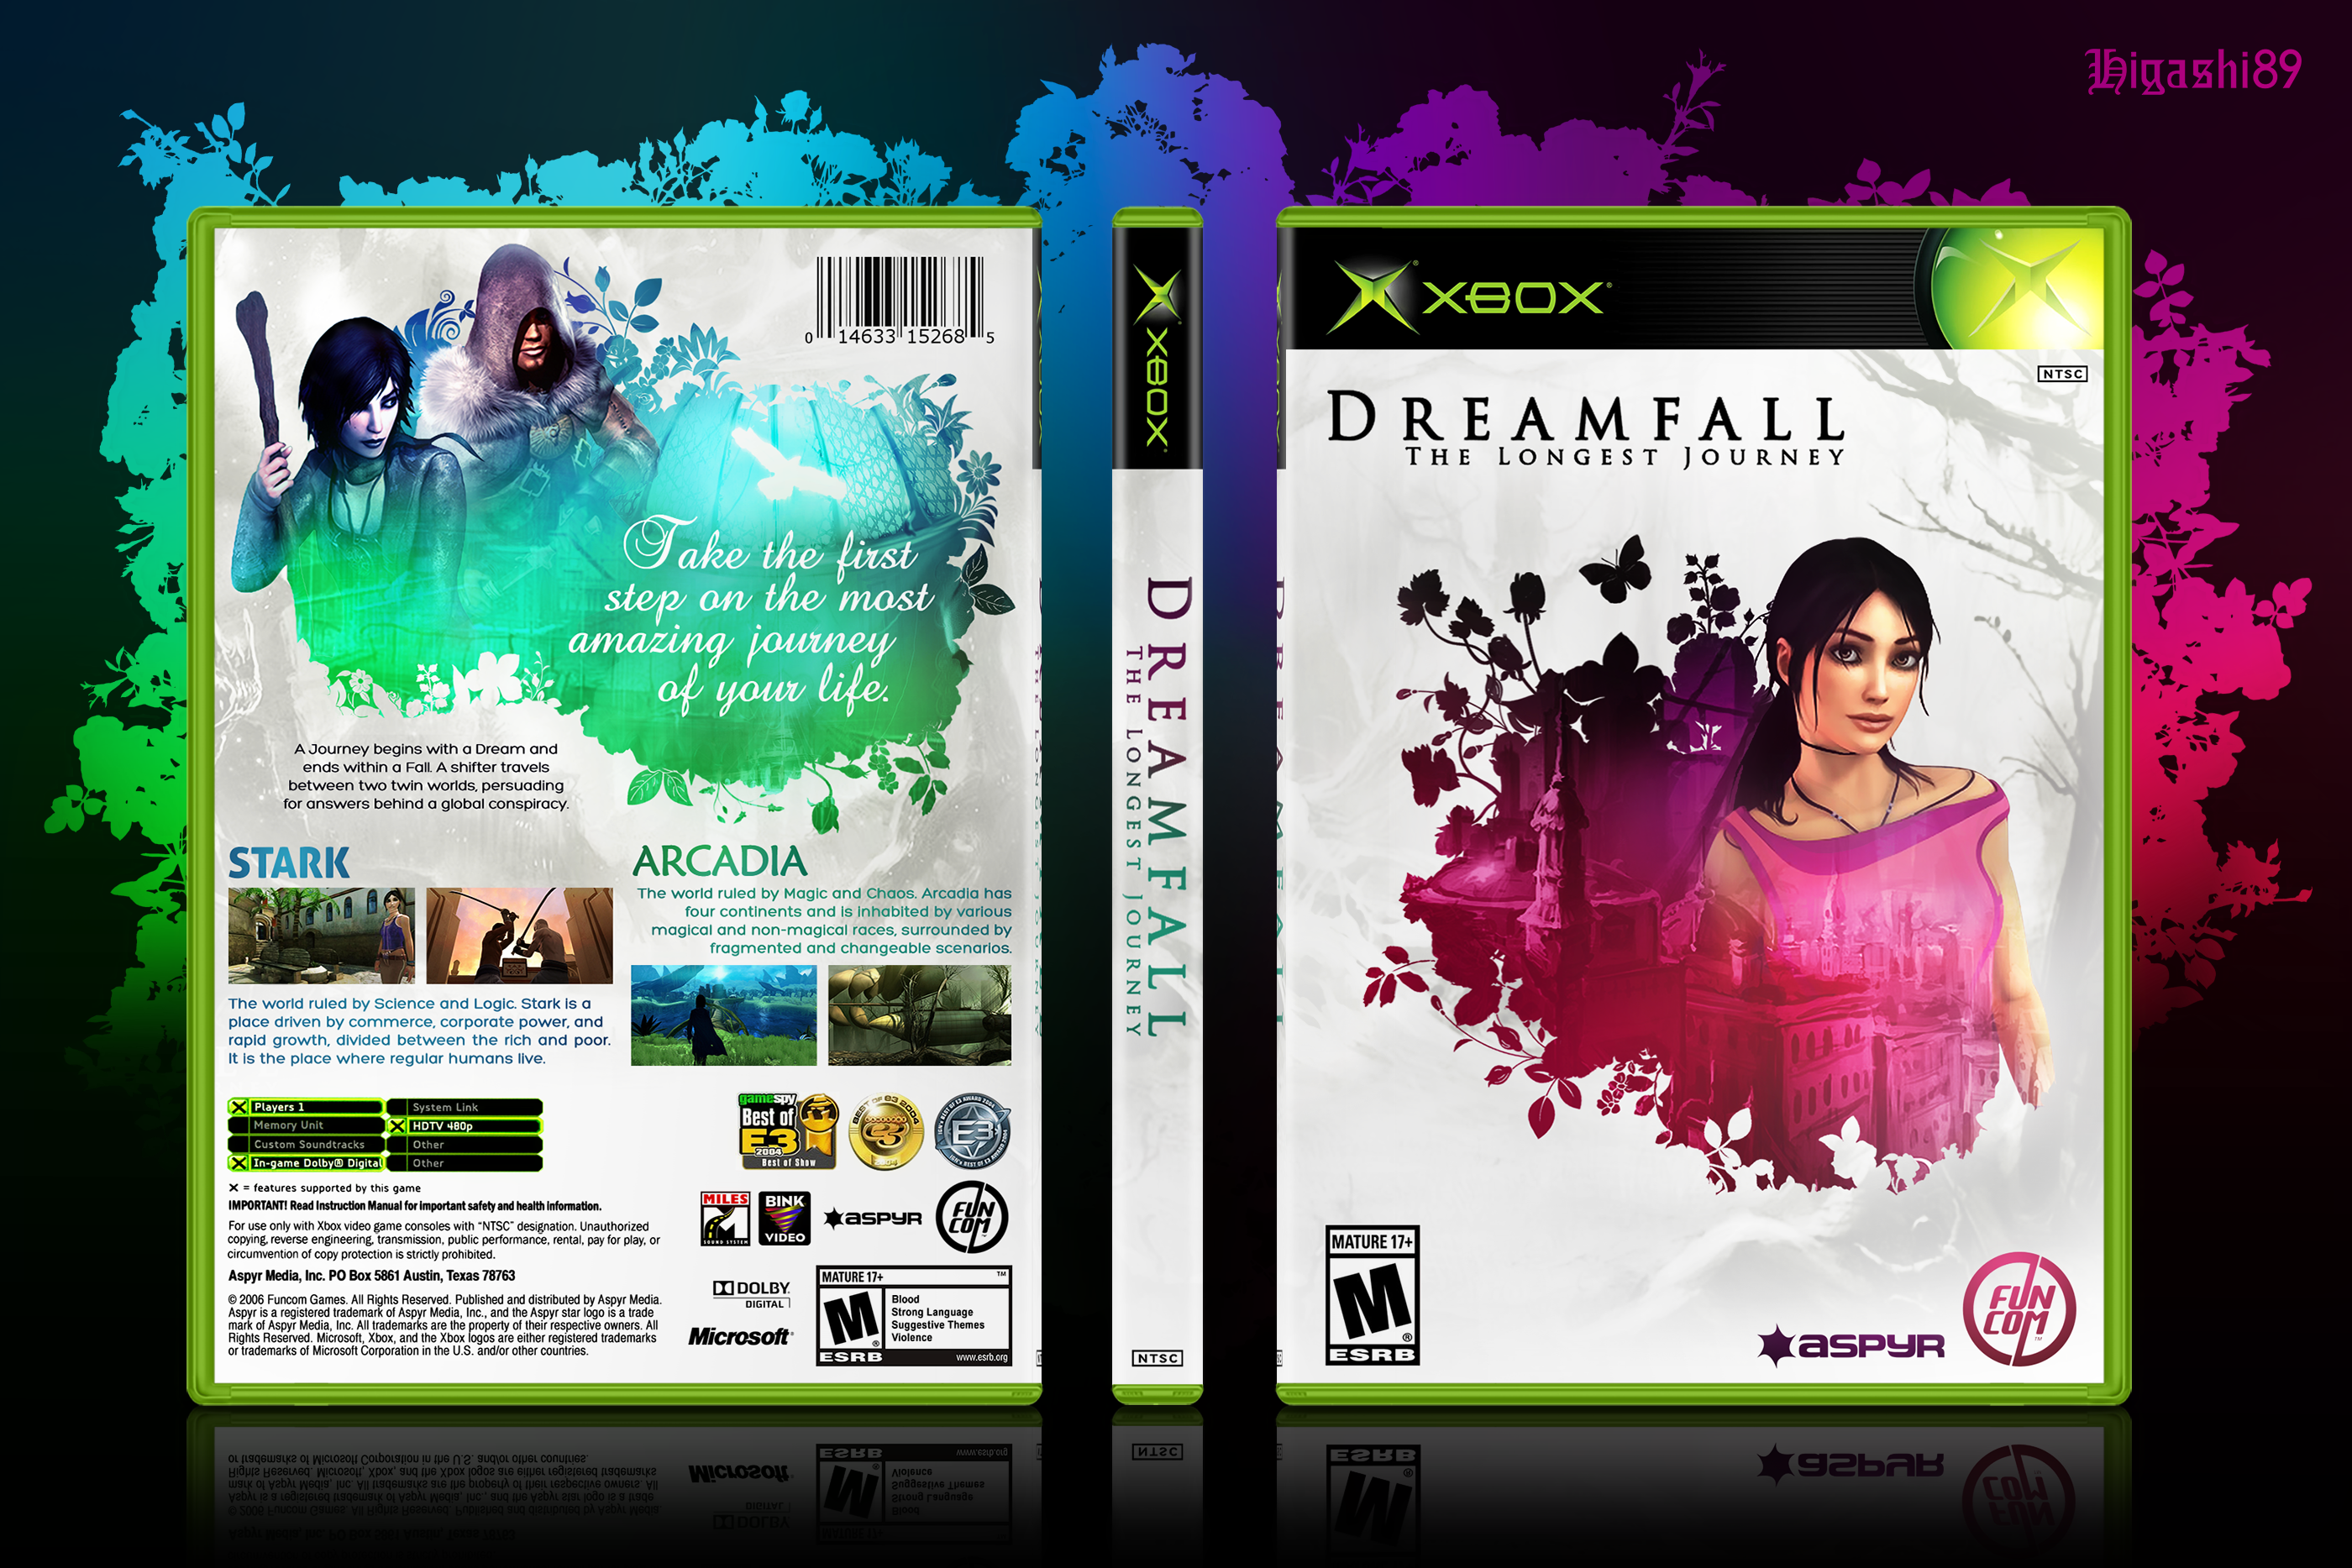 Dreamfall: The Longest Journey box cover